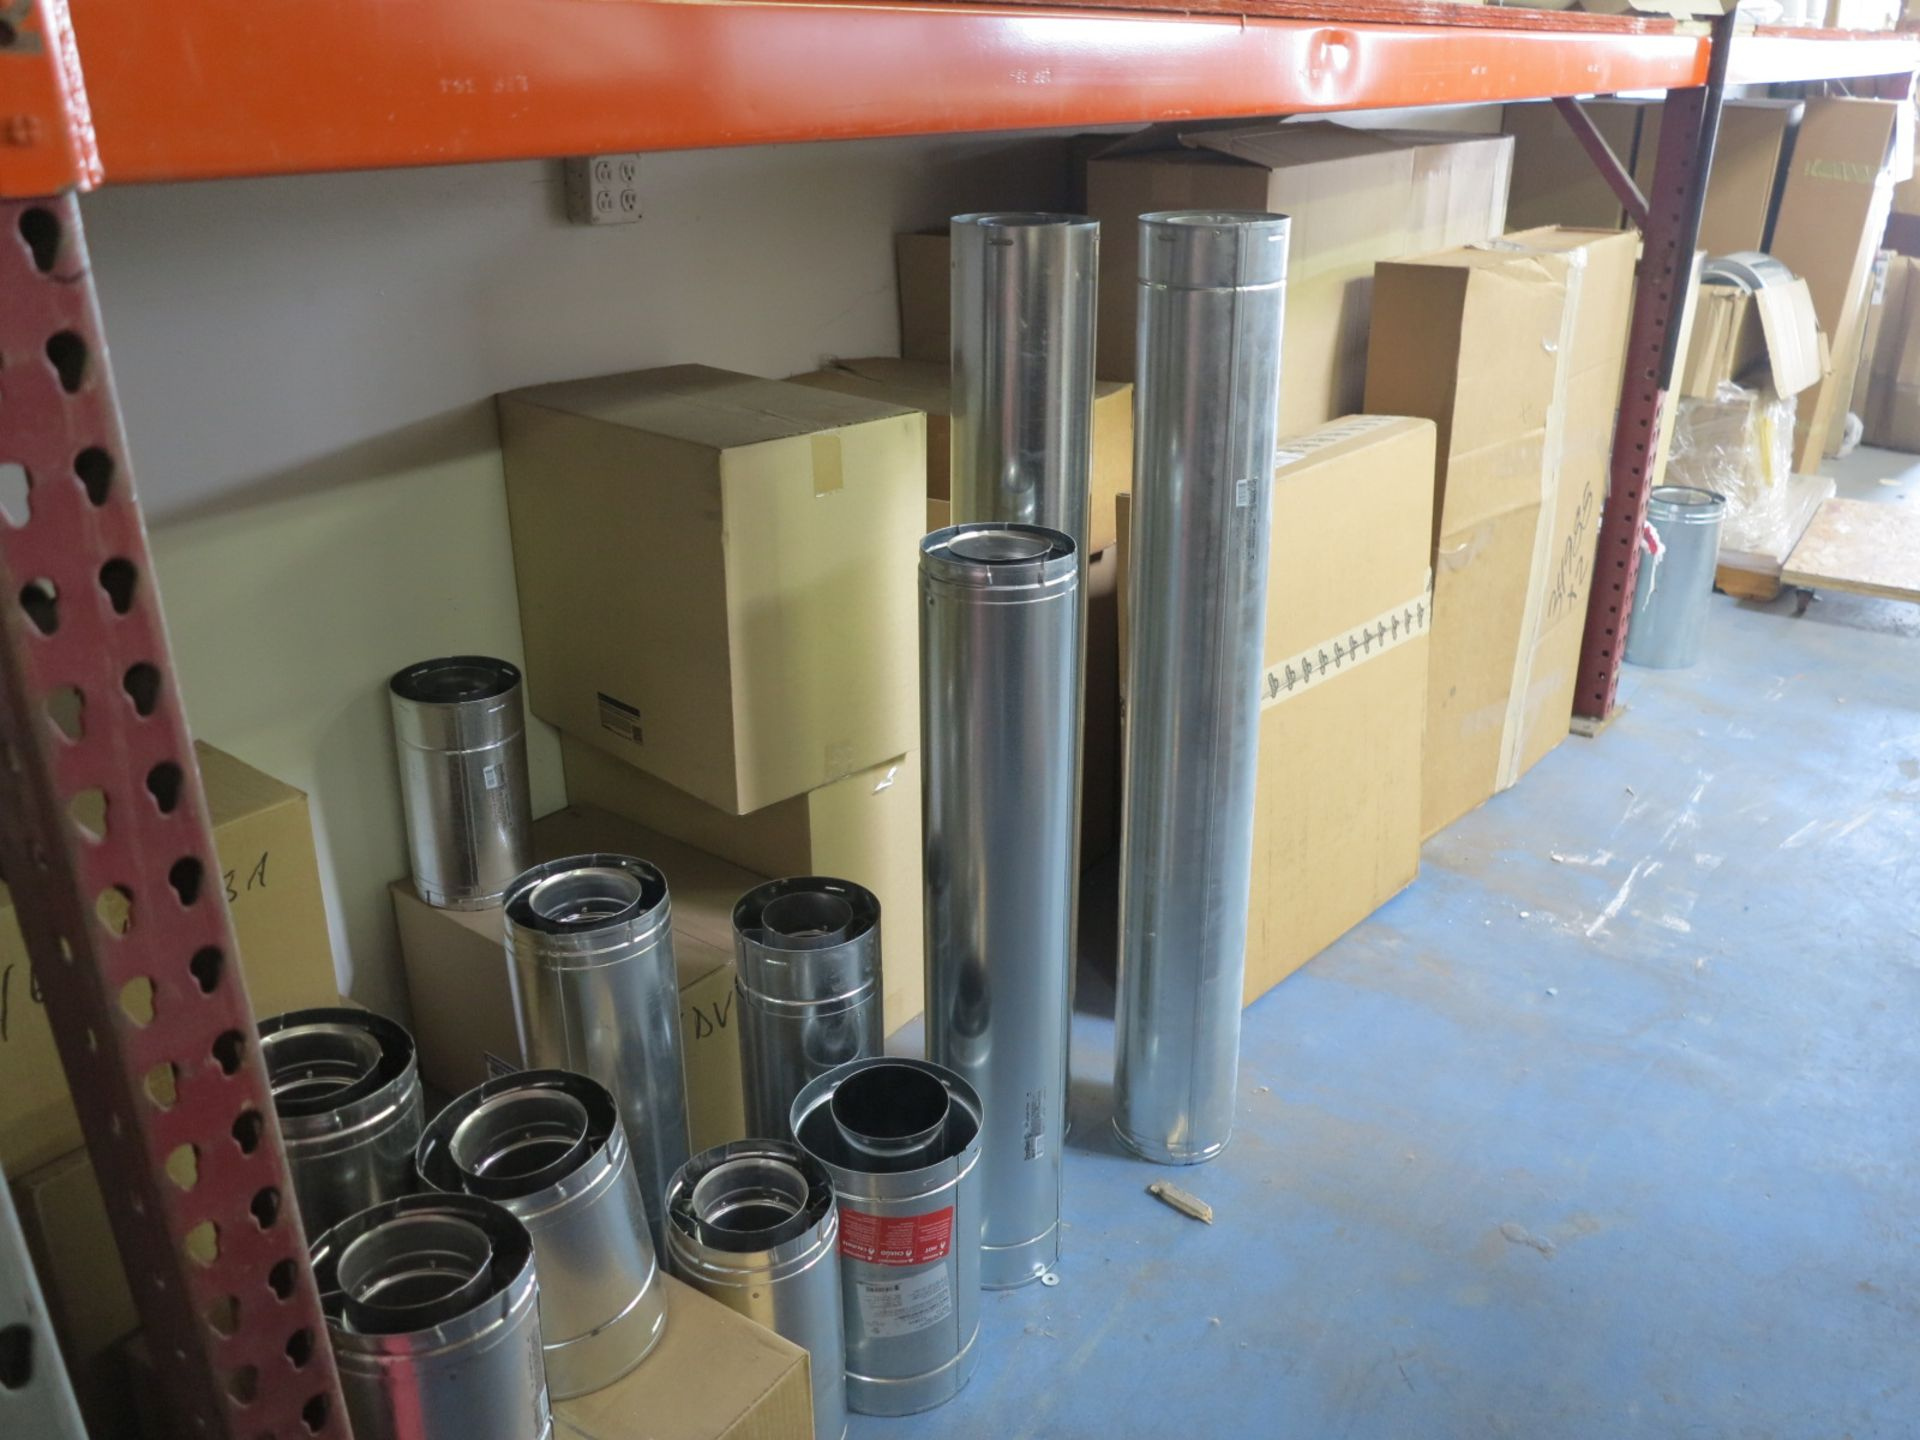 LOT - CONTENTS OF (1) SECTION OF PALLET RACKING, MISC STOVE PARTS